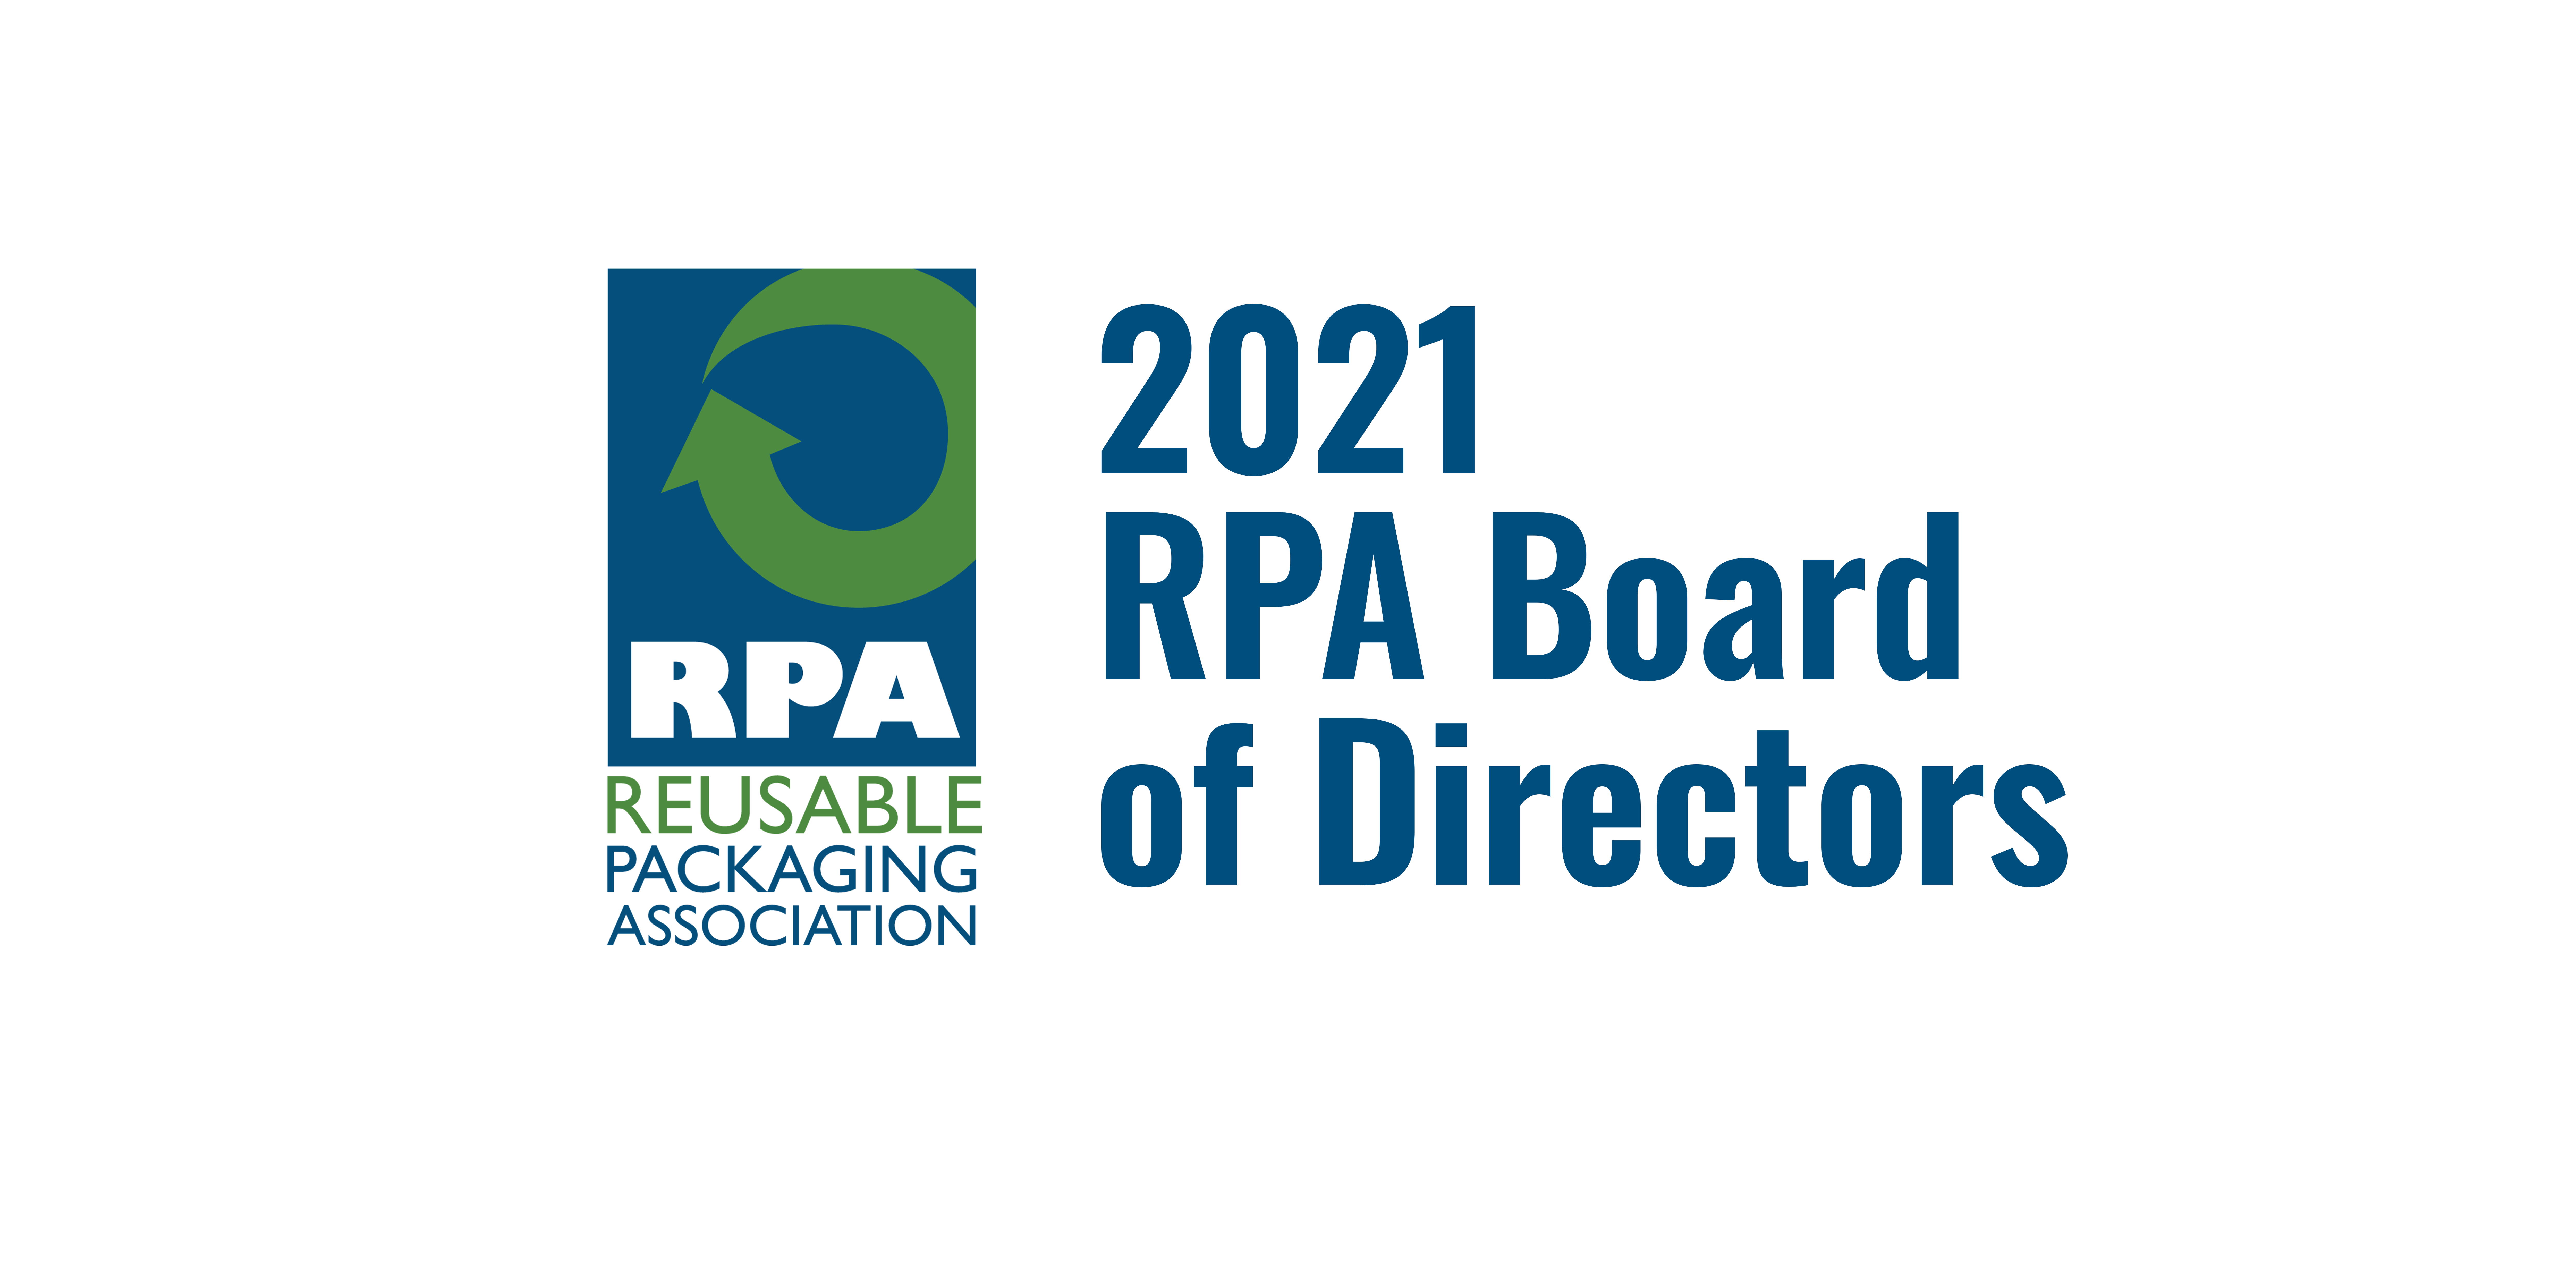 Reusable Packaging Association Announces New Board Leadership for 2021